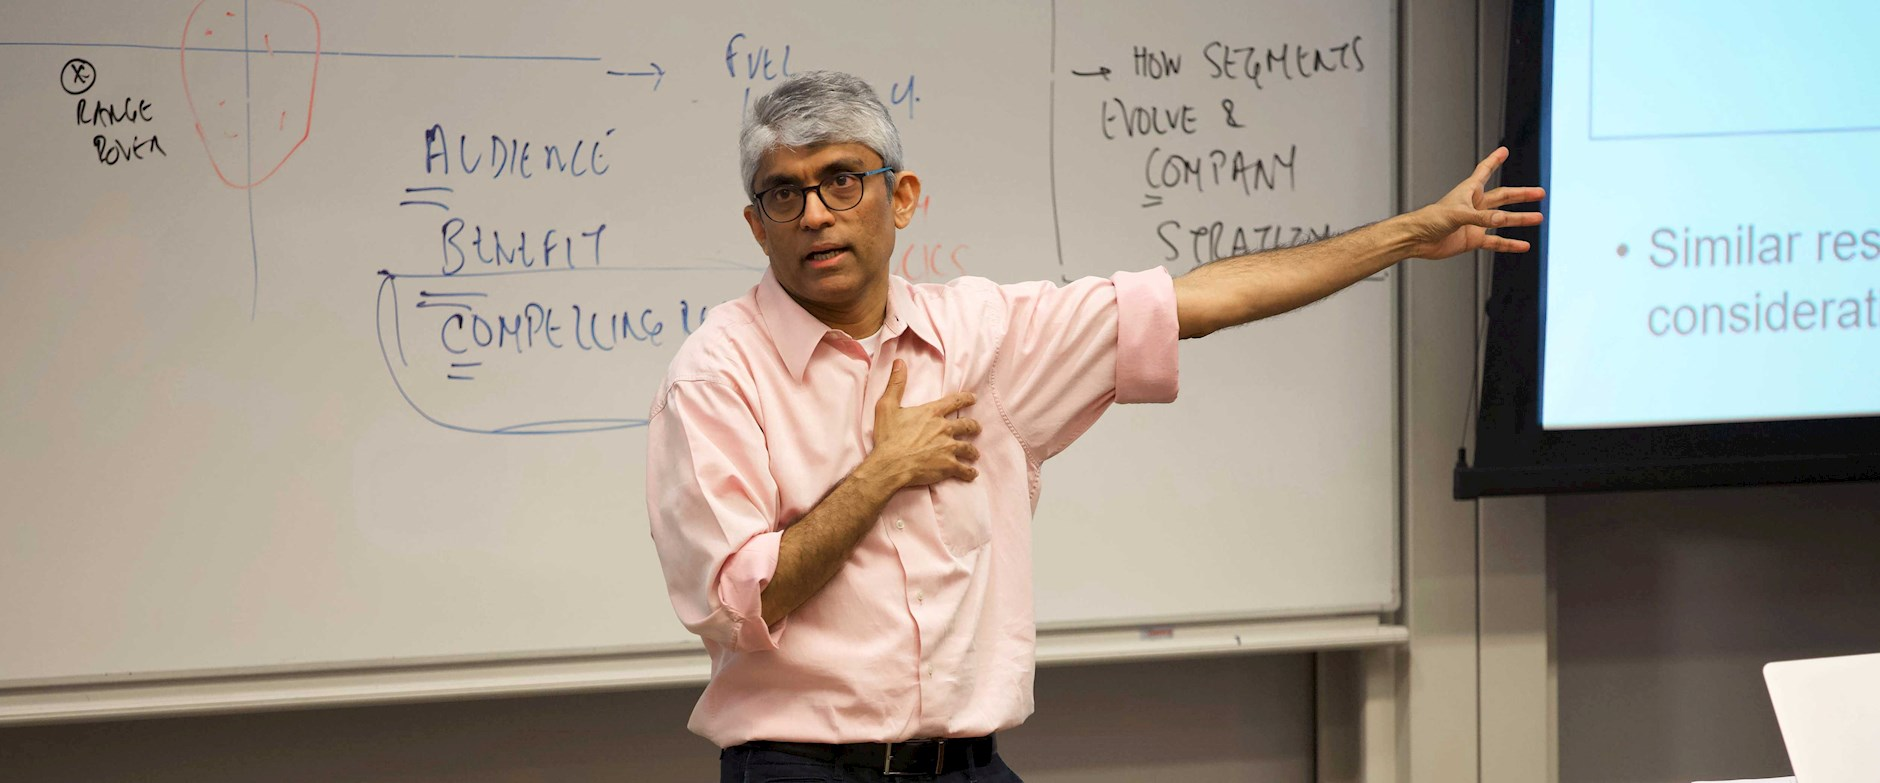 Pradeep Chintagunta teaching at the Harper Center